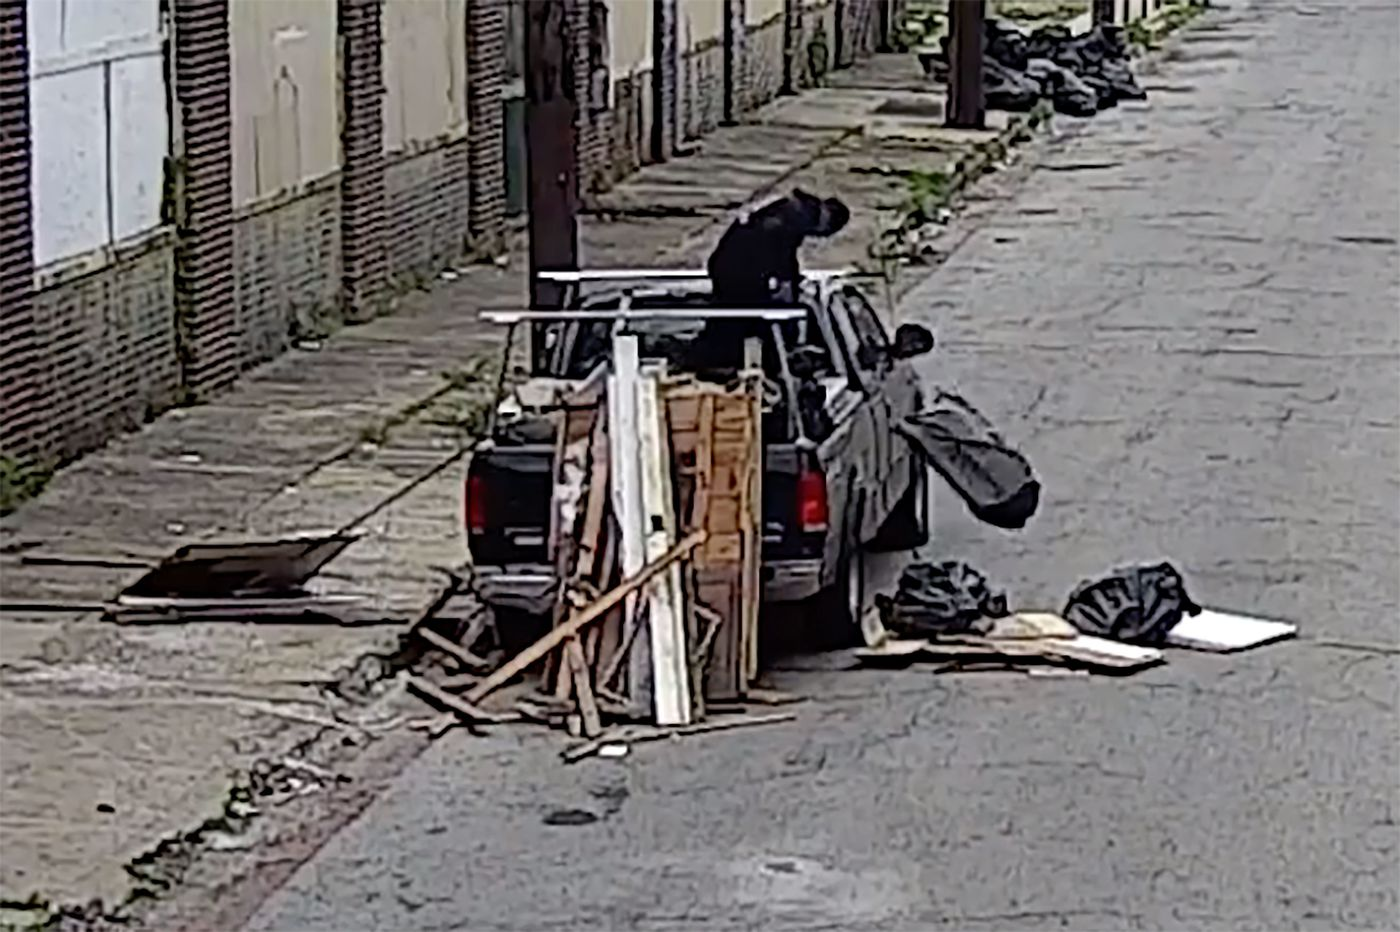 Philly is trying to stop illegal dumping by tracking who hauls contractors' trash